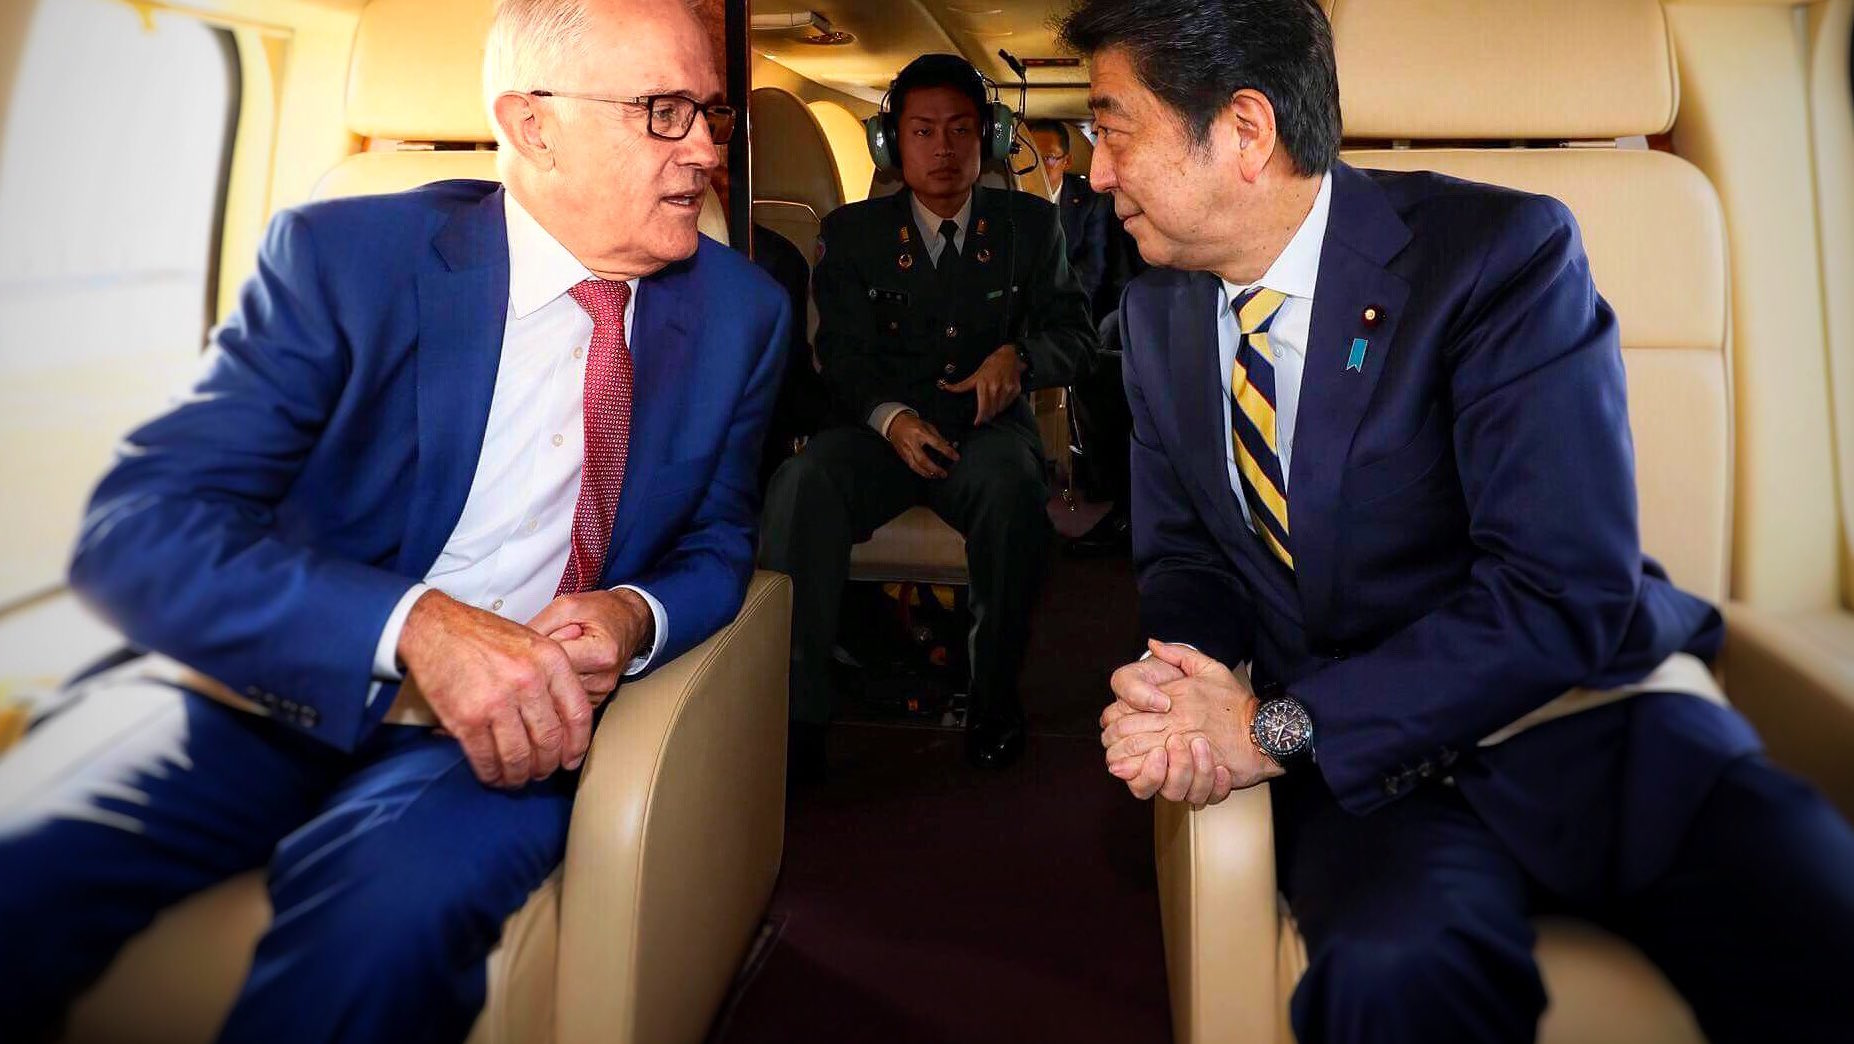 Malcolm Turnbull last week with his Japanese counterpart Shinzo Abe (Photo: Shinzo Abe/Twitter)